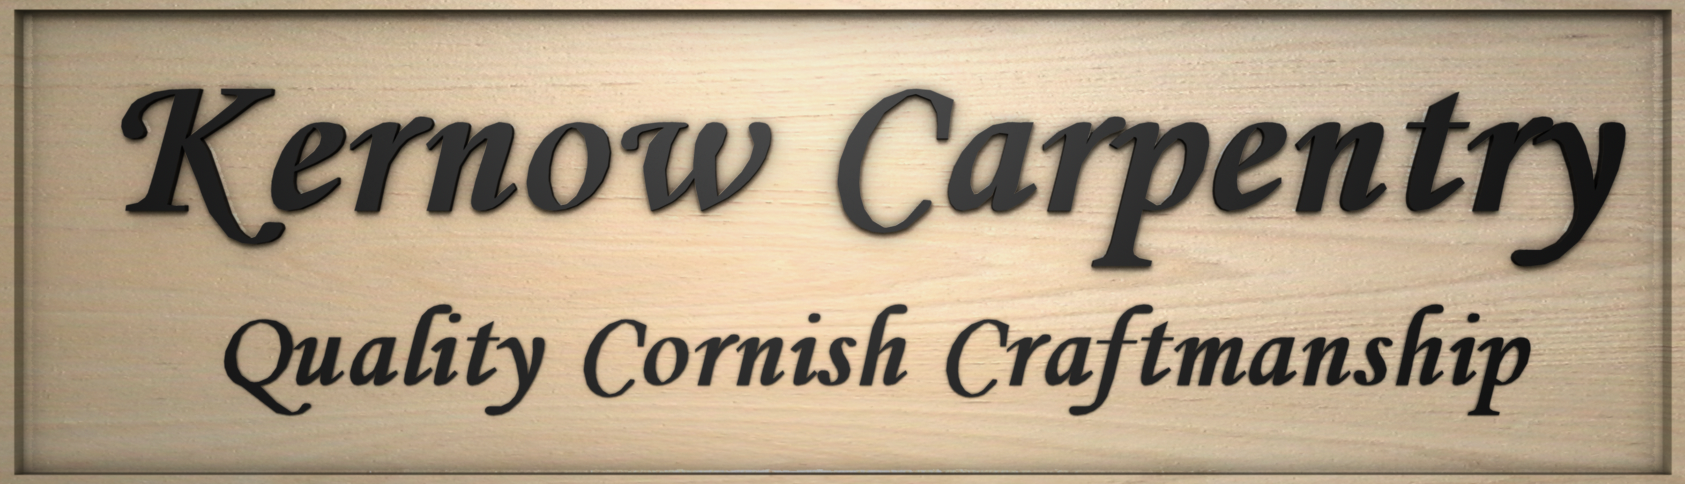 Kernow Carpentry